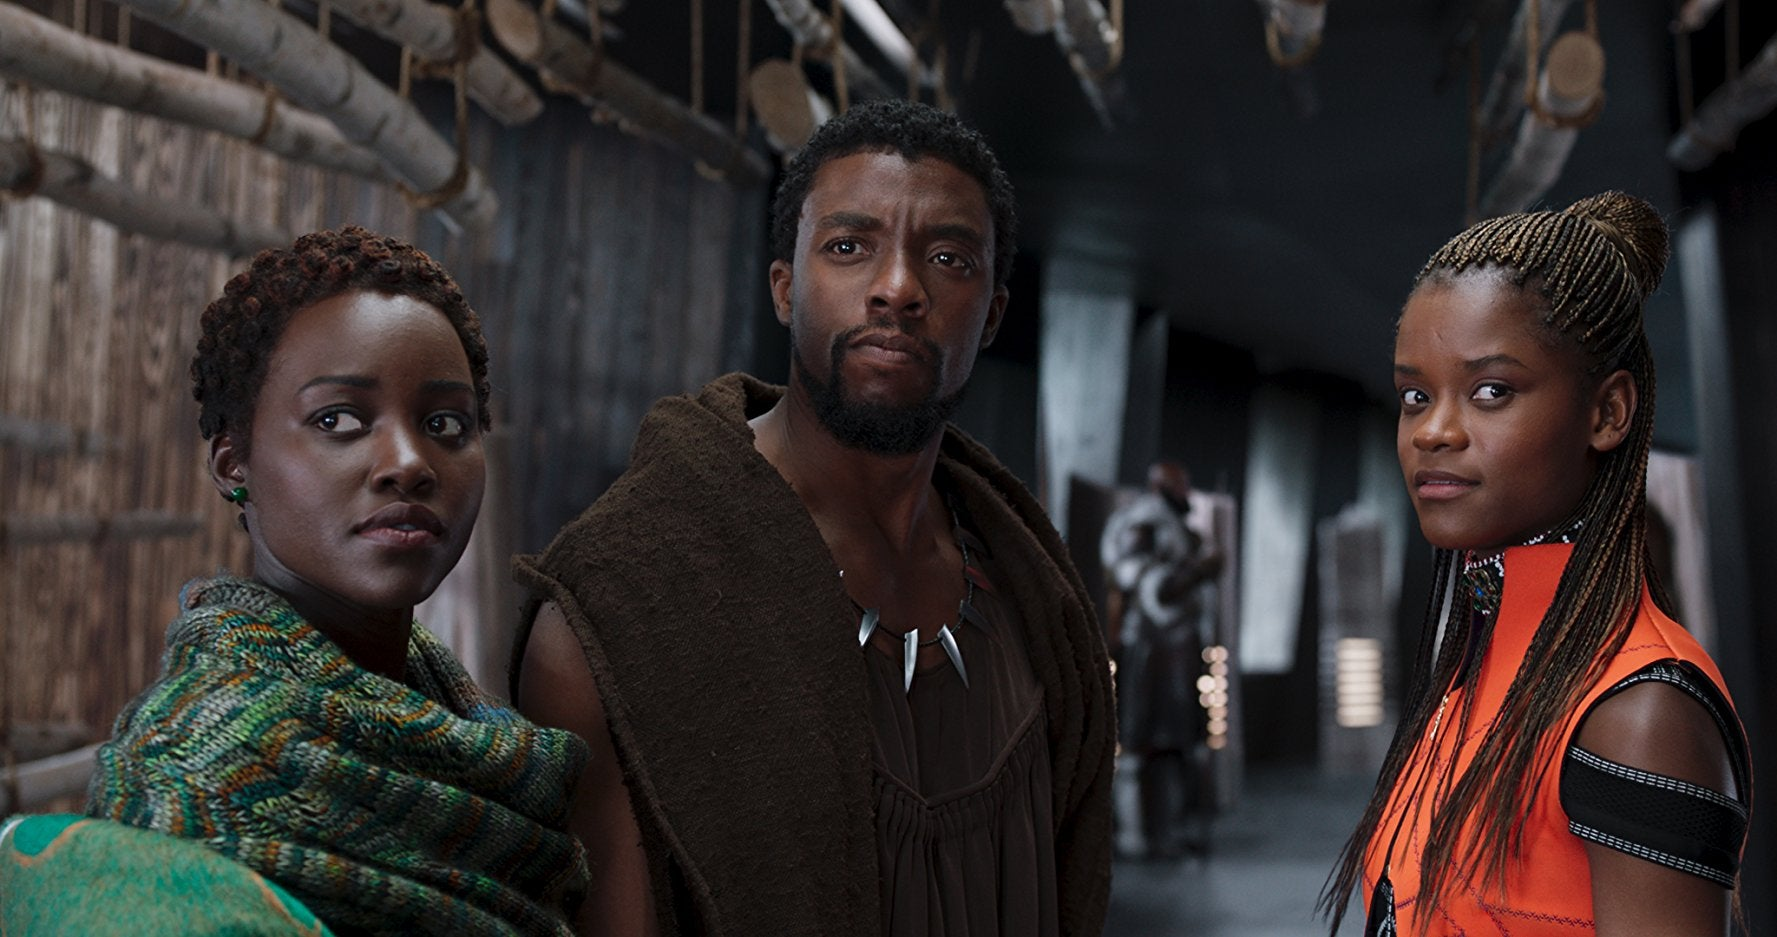 Lupita Nyong'o, Chadwick Boseman, and Letitia Wright in Black Panther